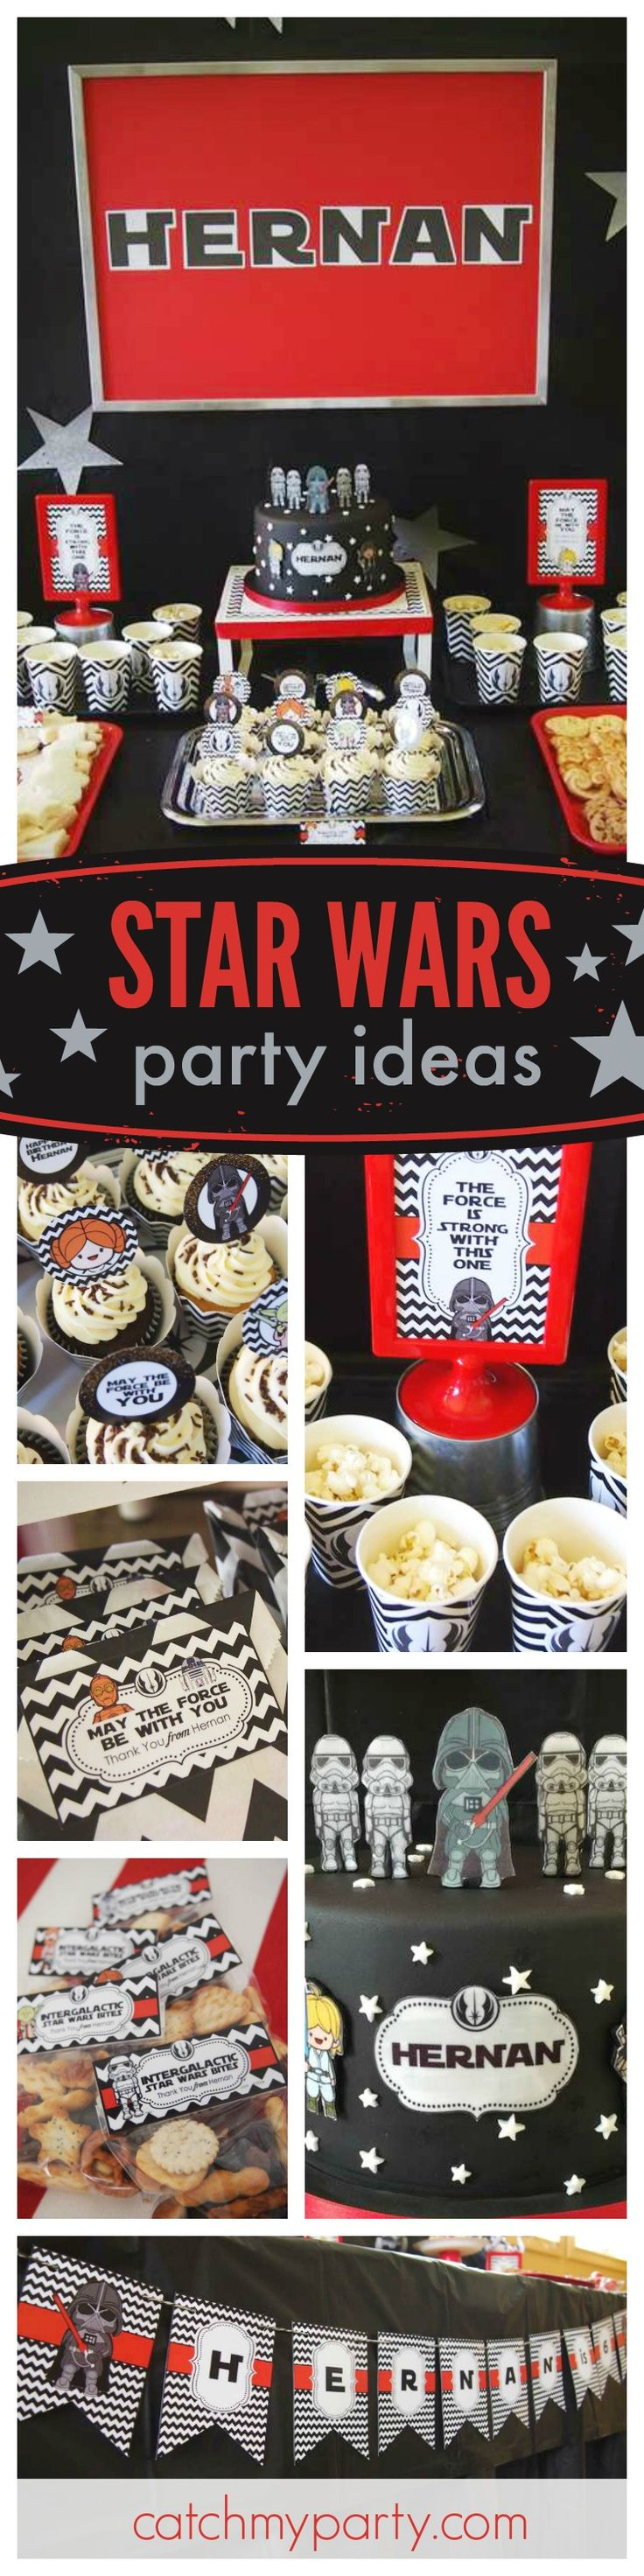 394 best Star Wars Party Ideas images on Pinterest